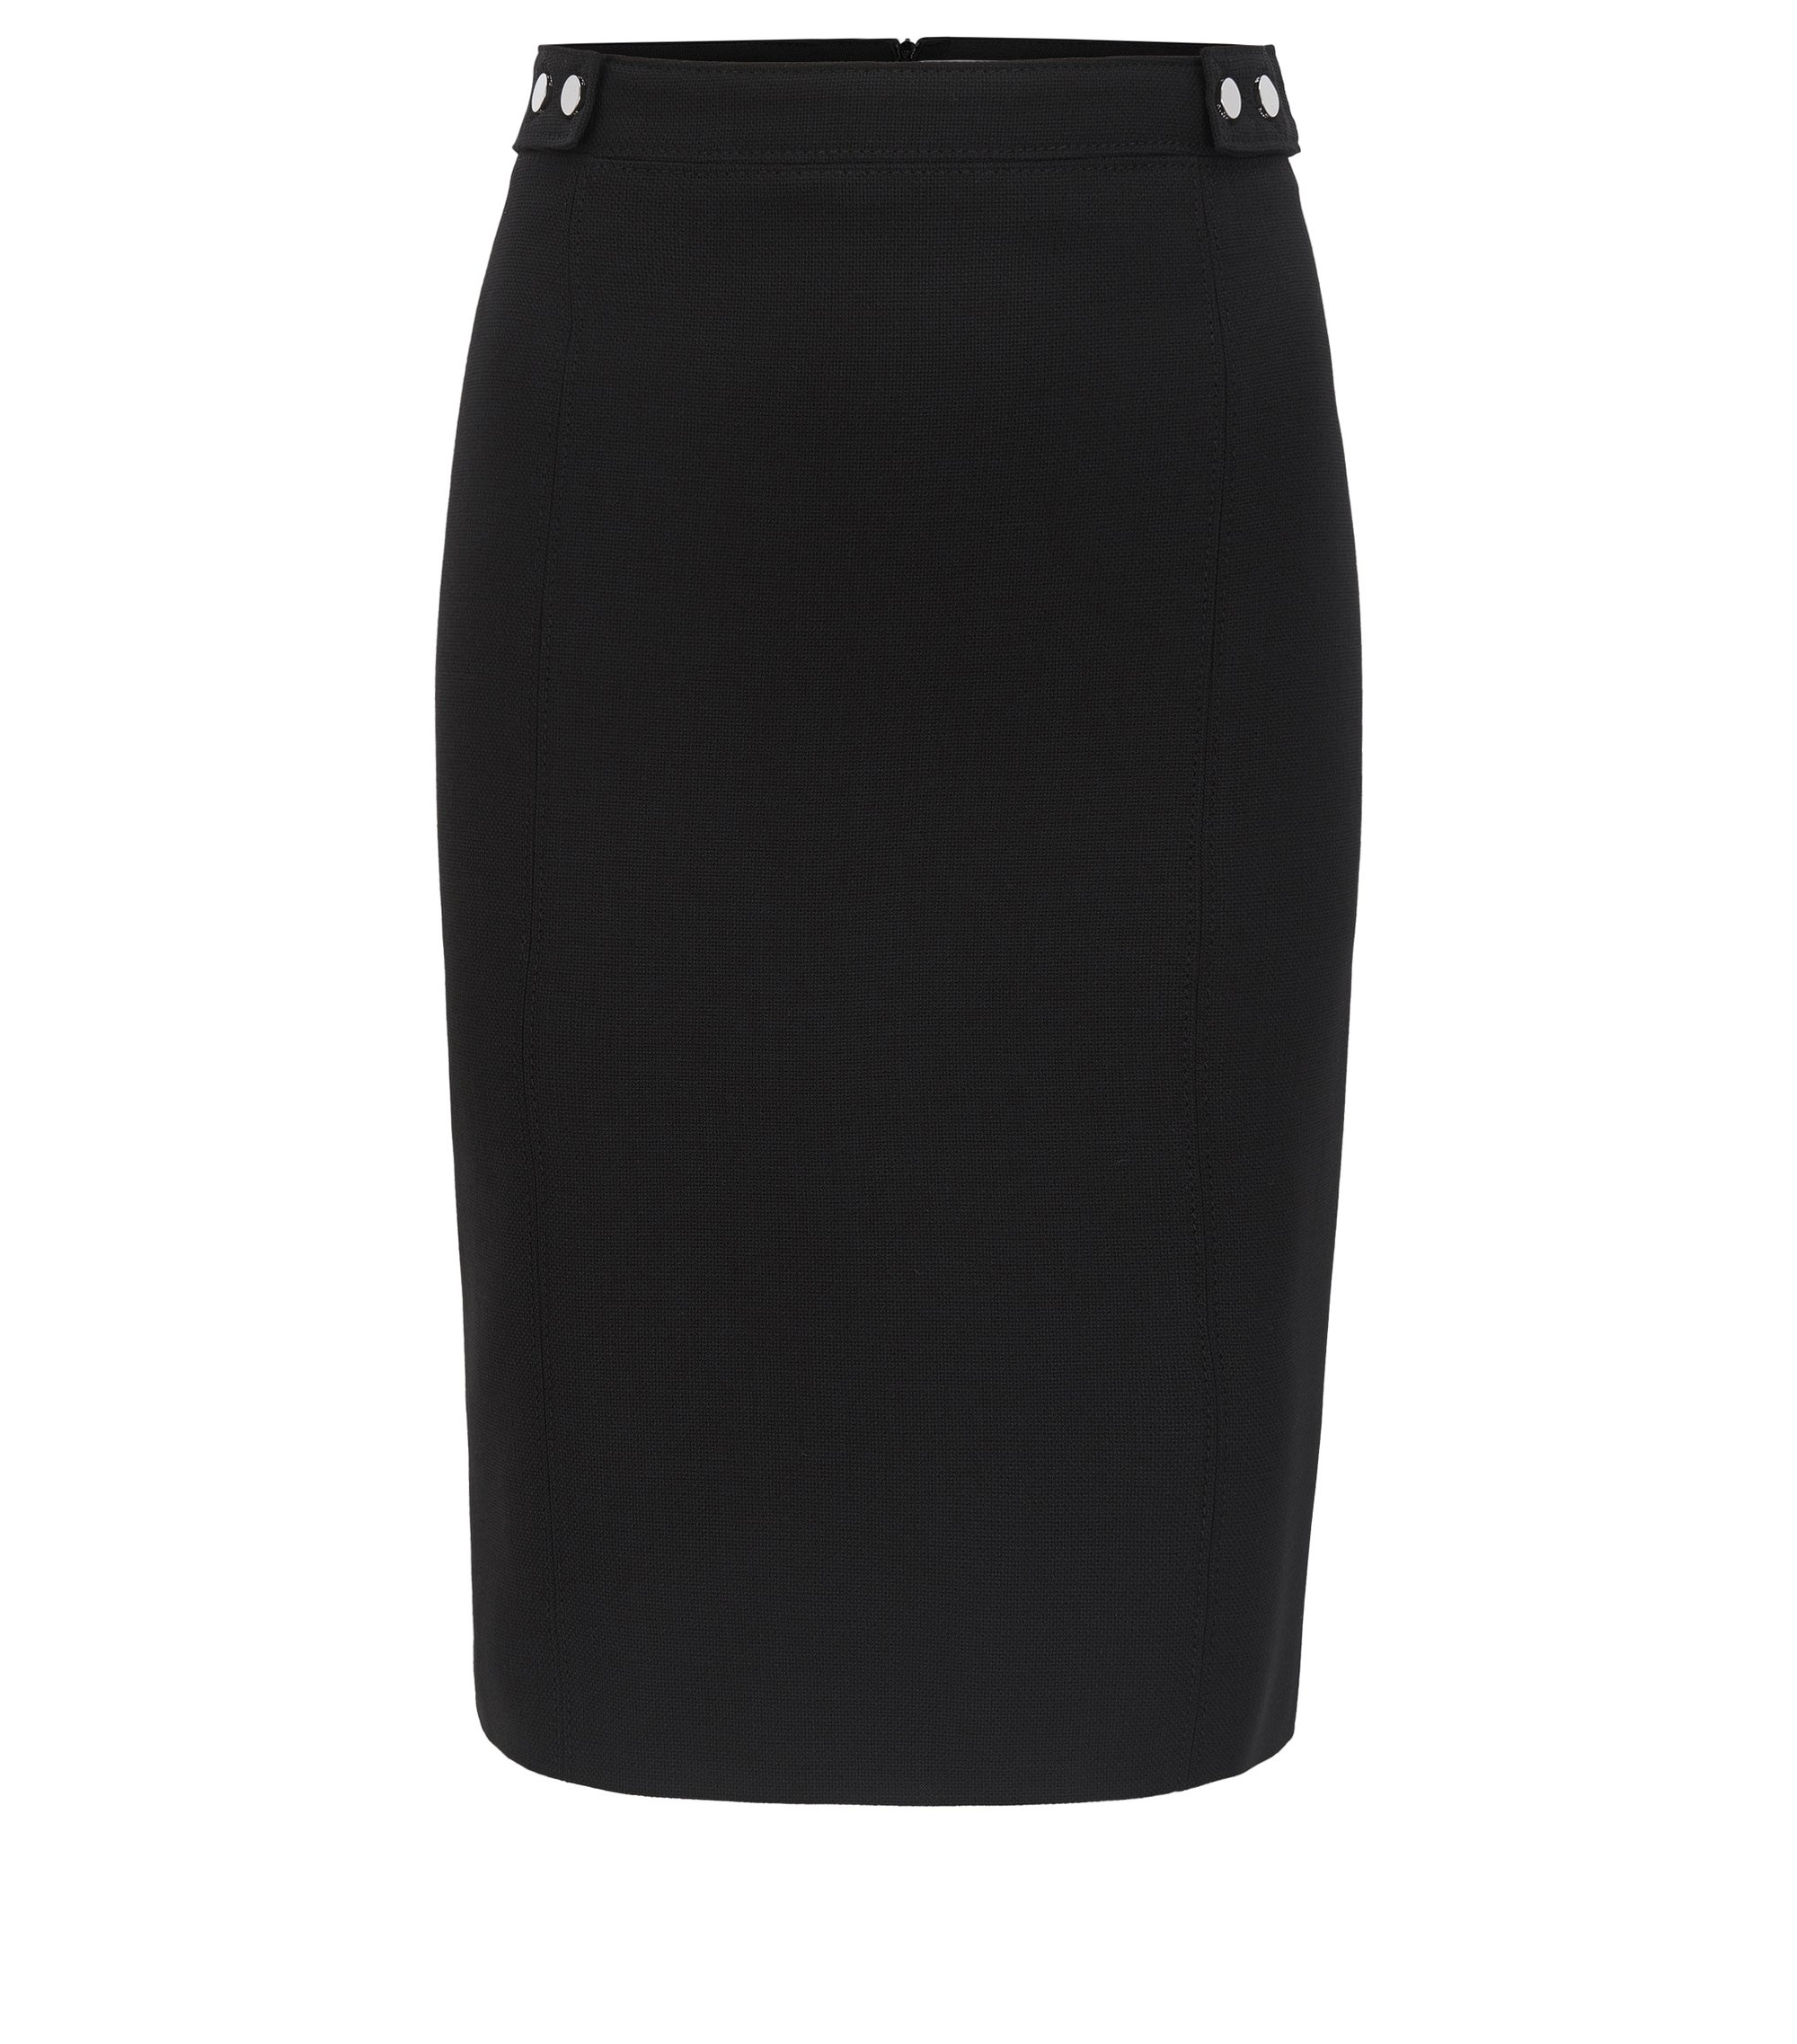 Pencil skirt in stretch virgin wool with stud details, Black